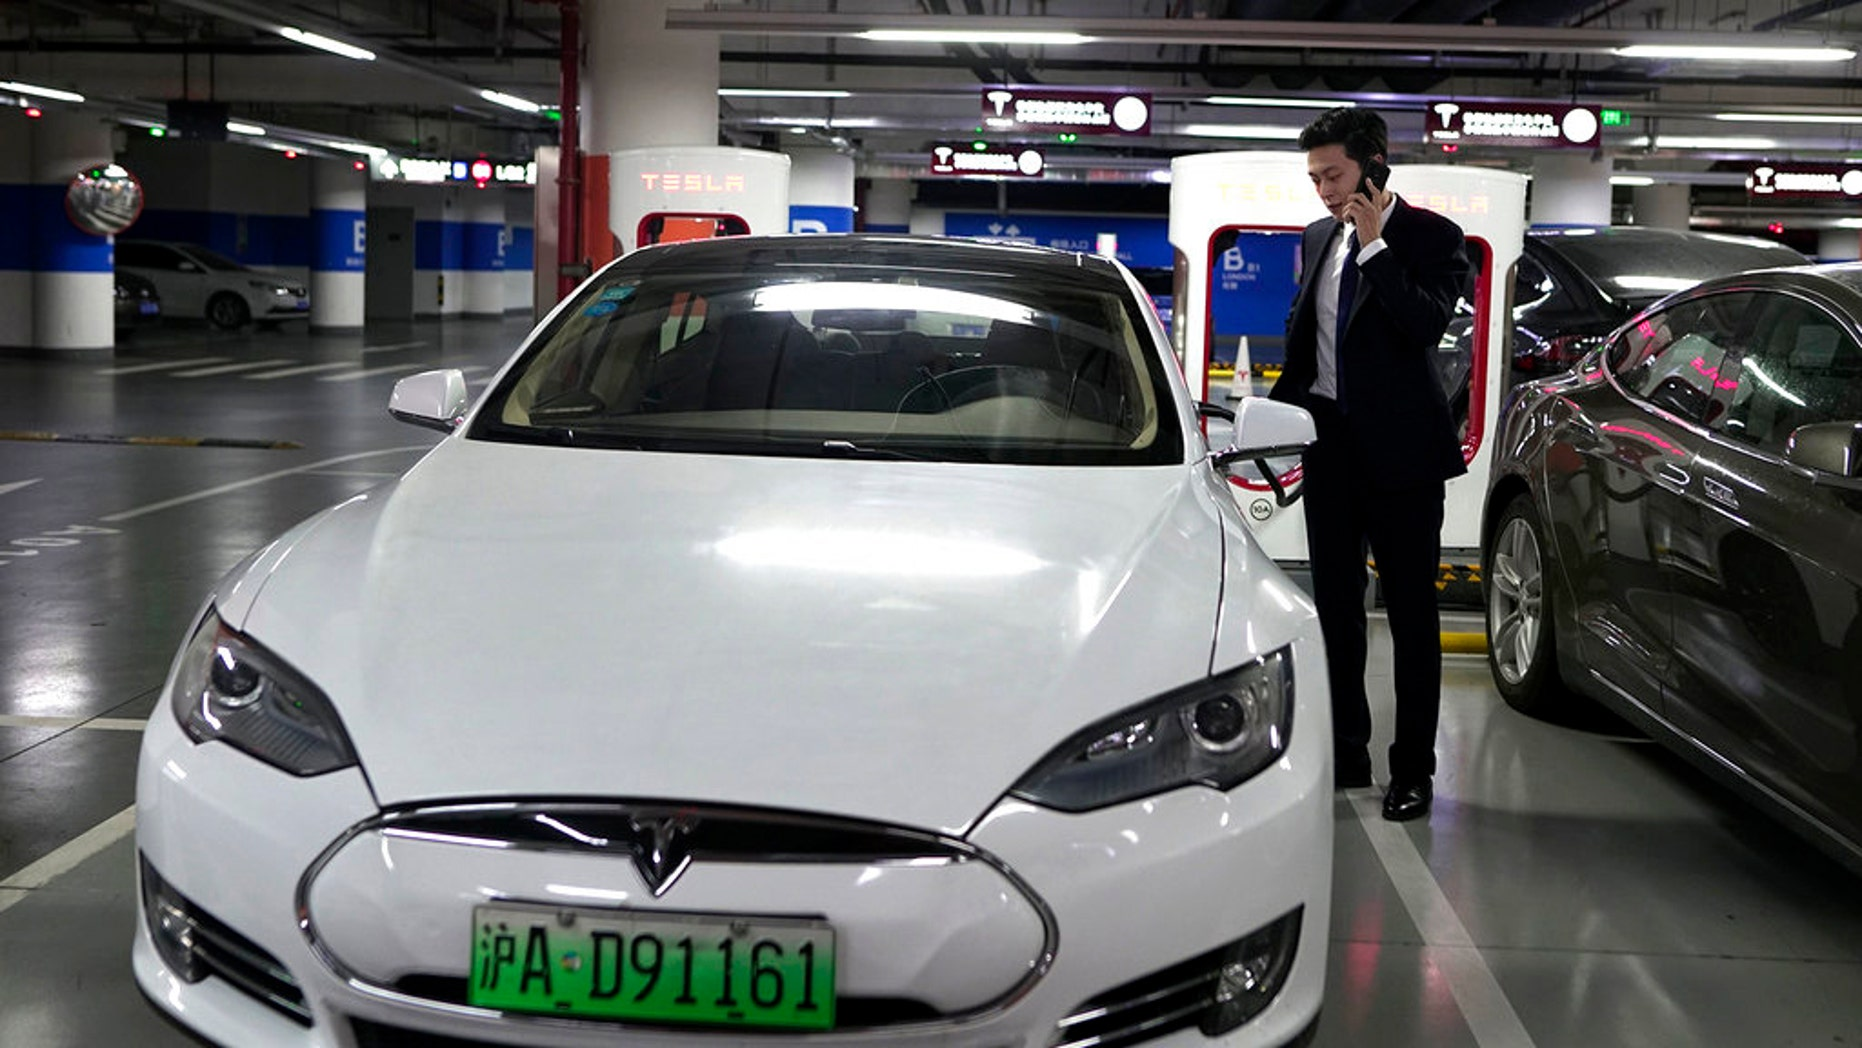 chinese government's monitoring of electric cars raises surveillance